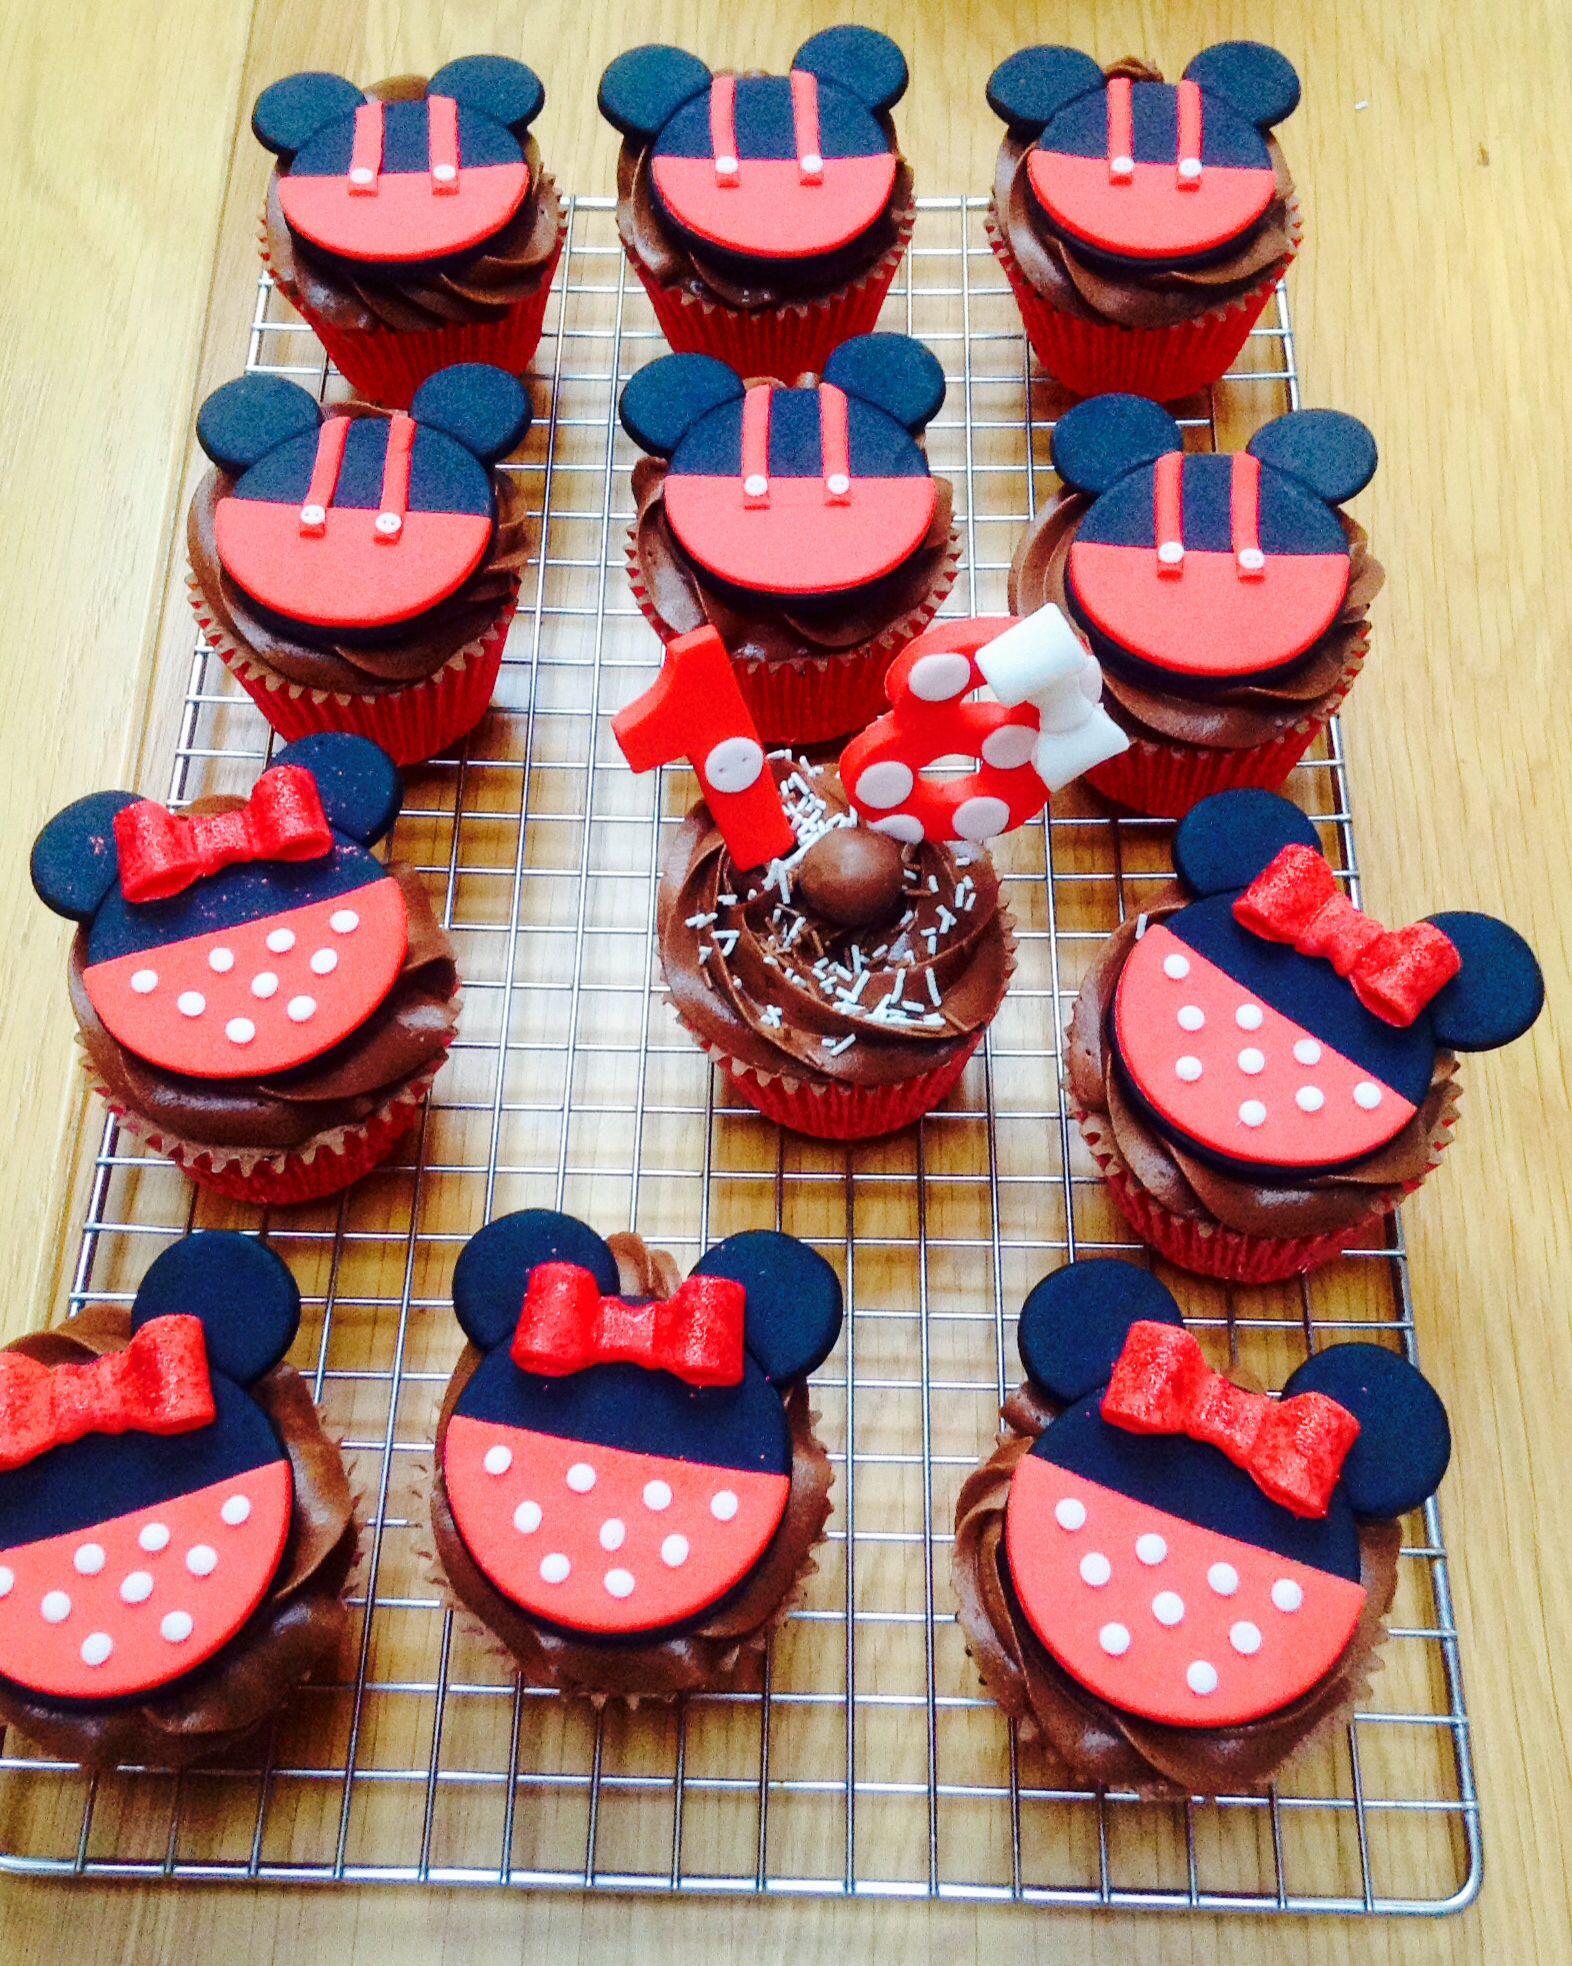 Micky mouse cupcakes!